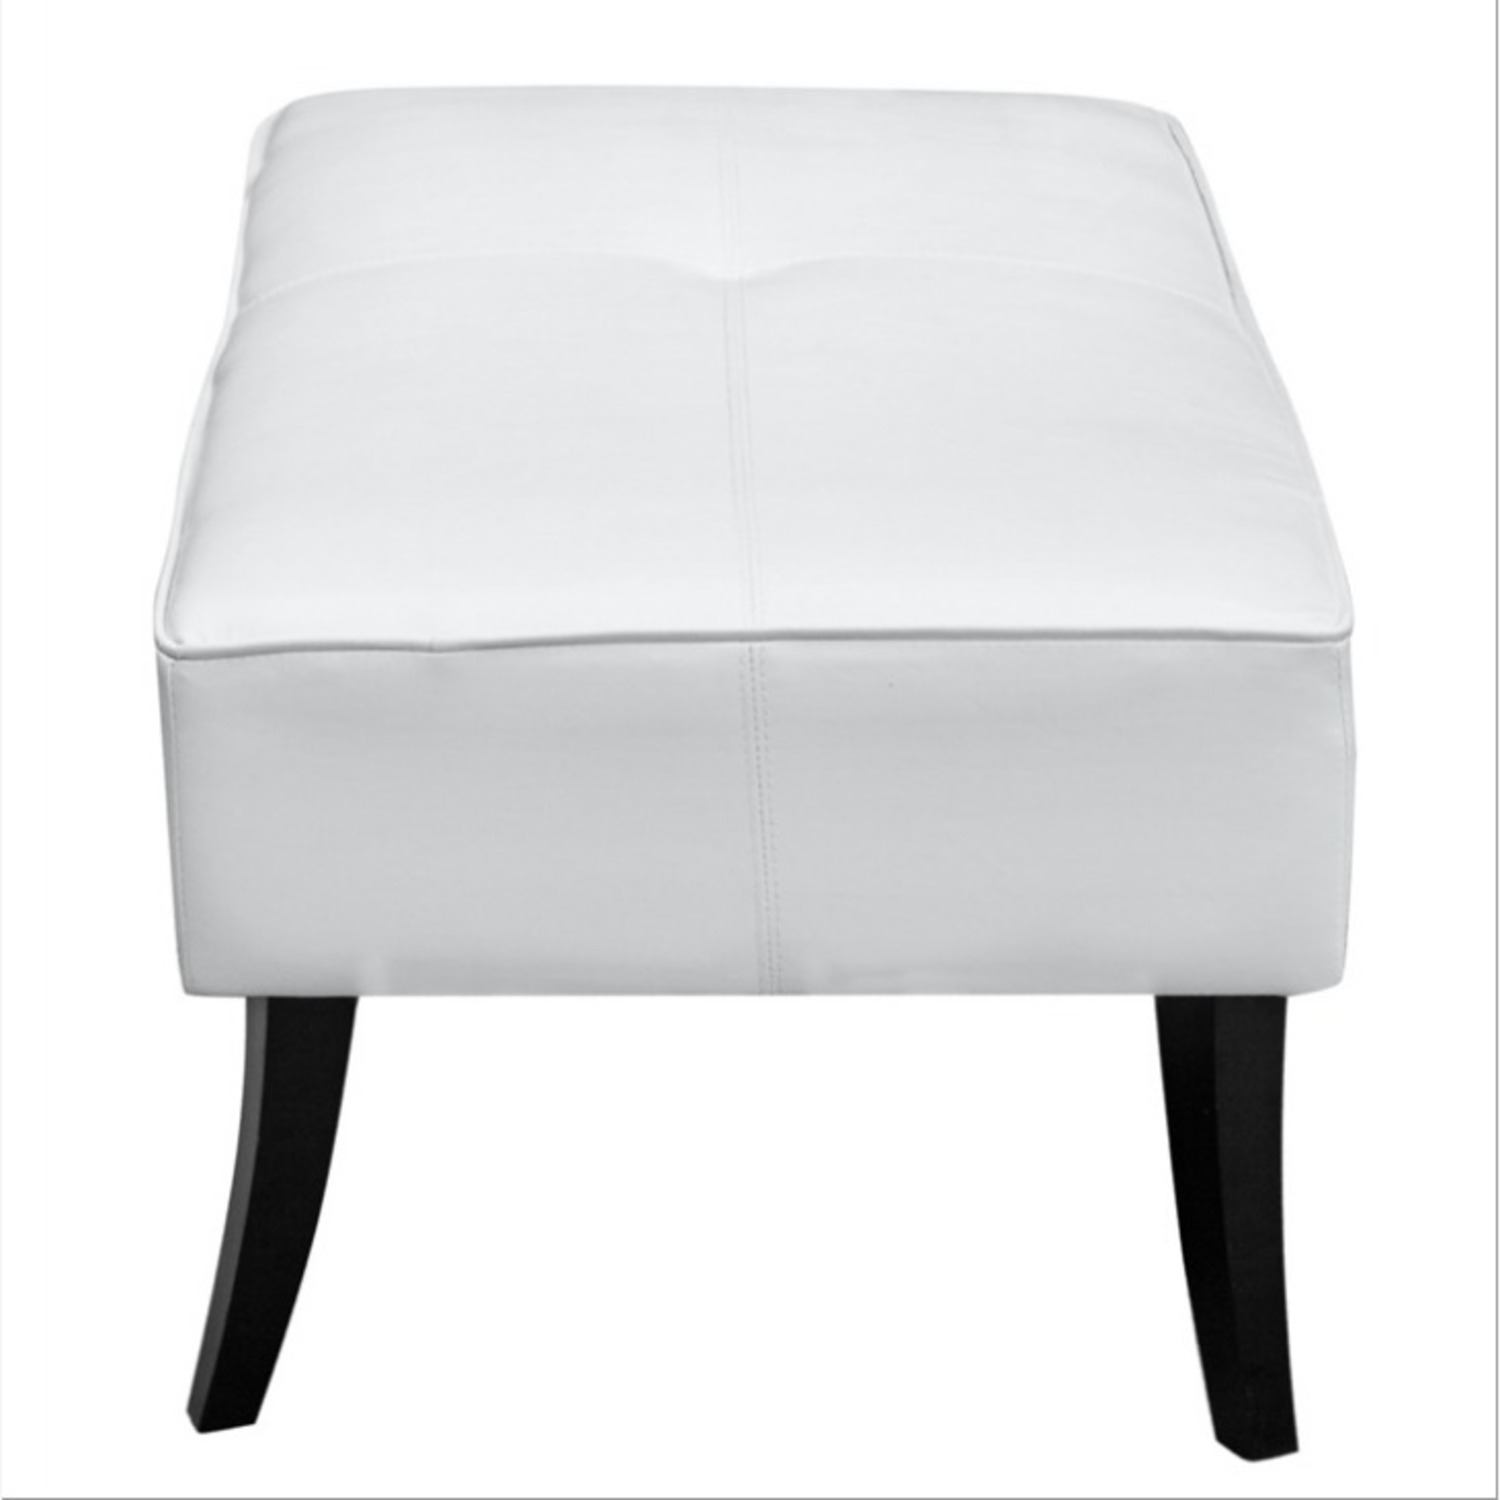 Bench In White Bonded Leather W/ Wood Frame - image-2